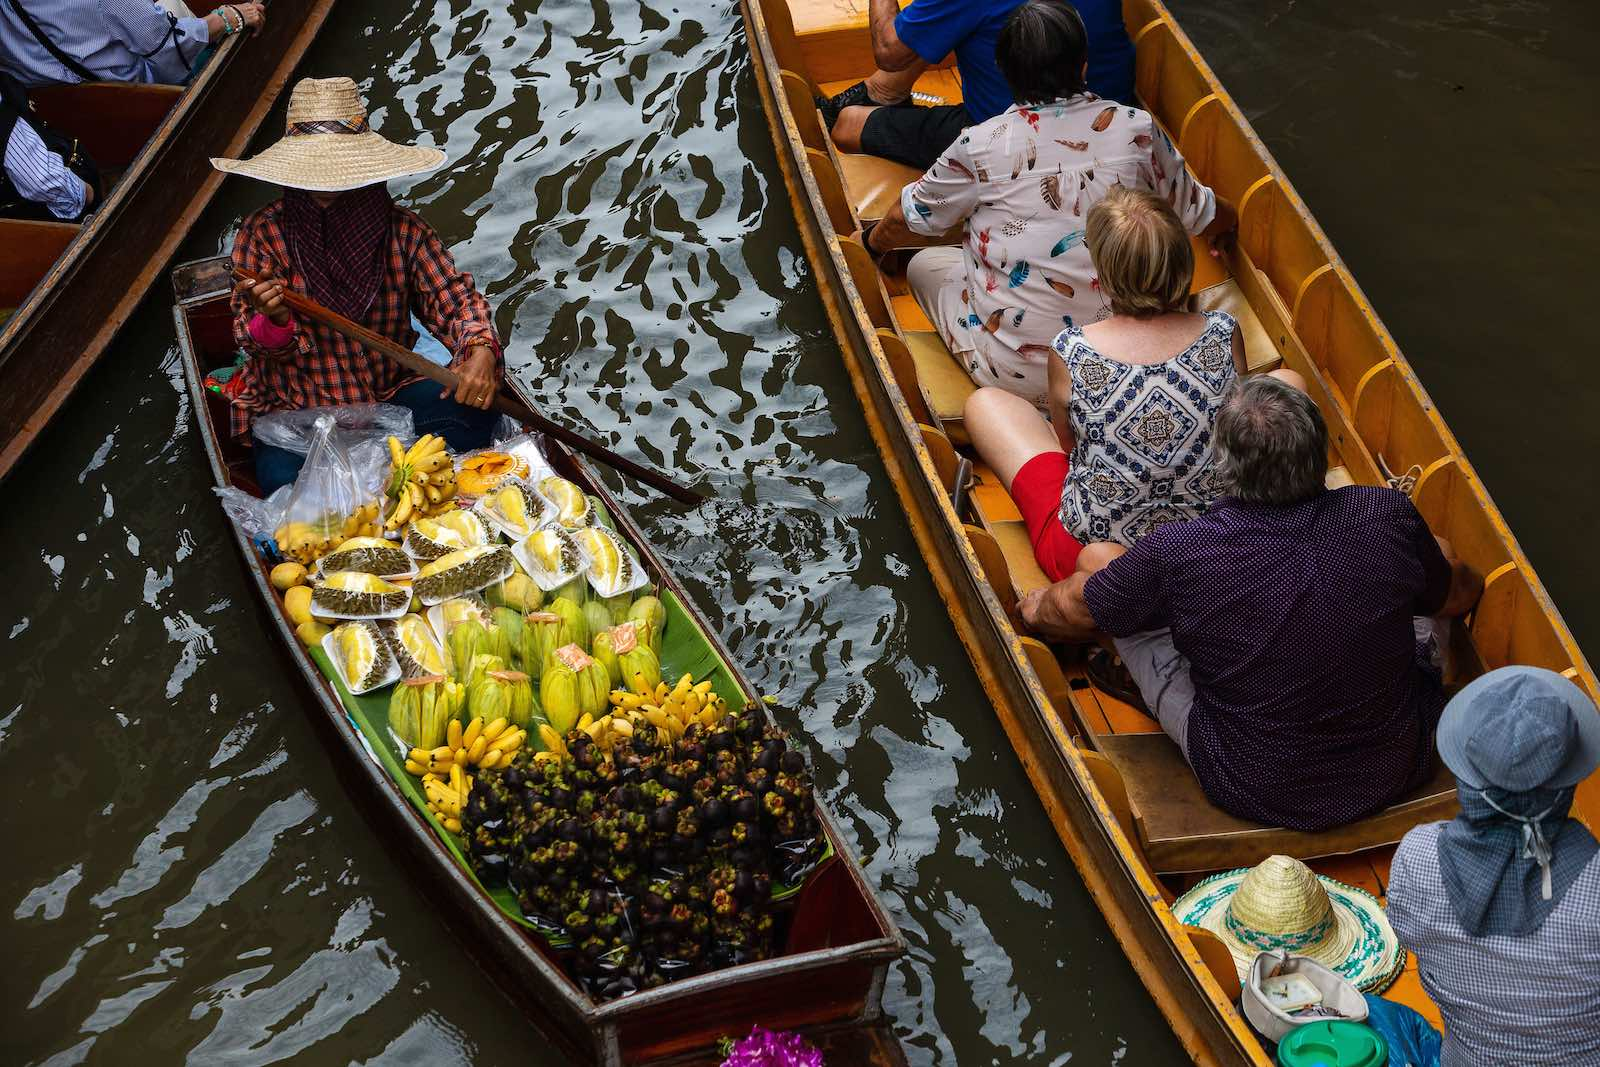 It's tricky getting everyone pointed in the same direction: a floating market in Damnoen Saduak, Thailand (Photo: Eduardo Leal via Getty)